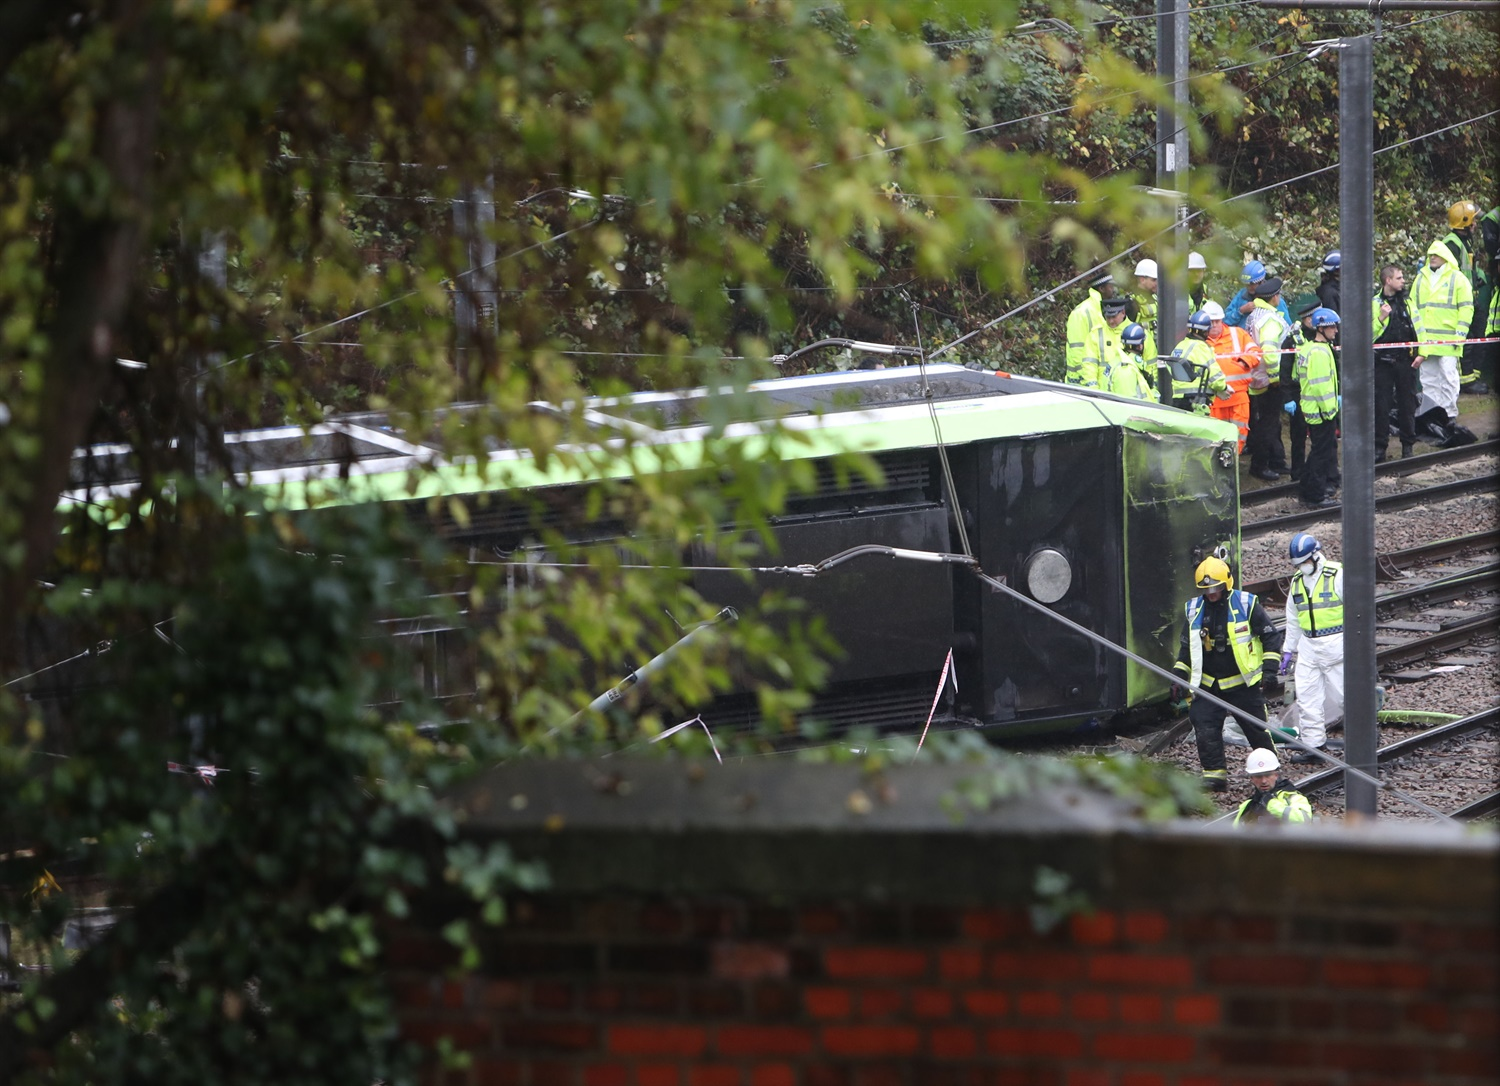 Passengers trapped after tram derails at Croydon